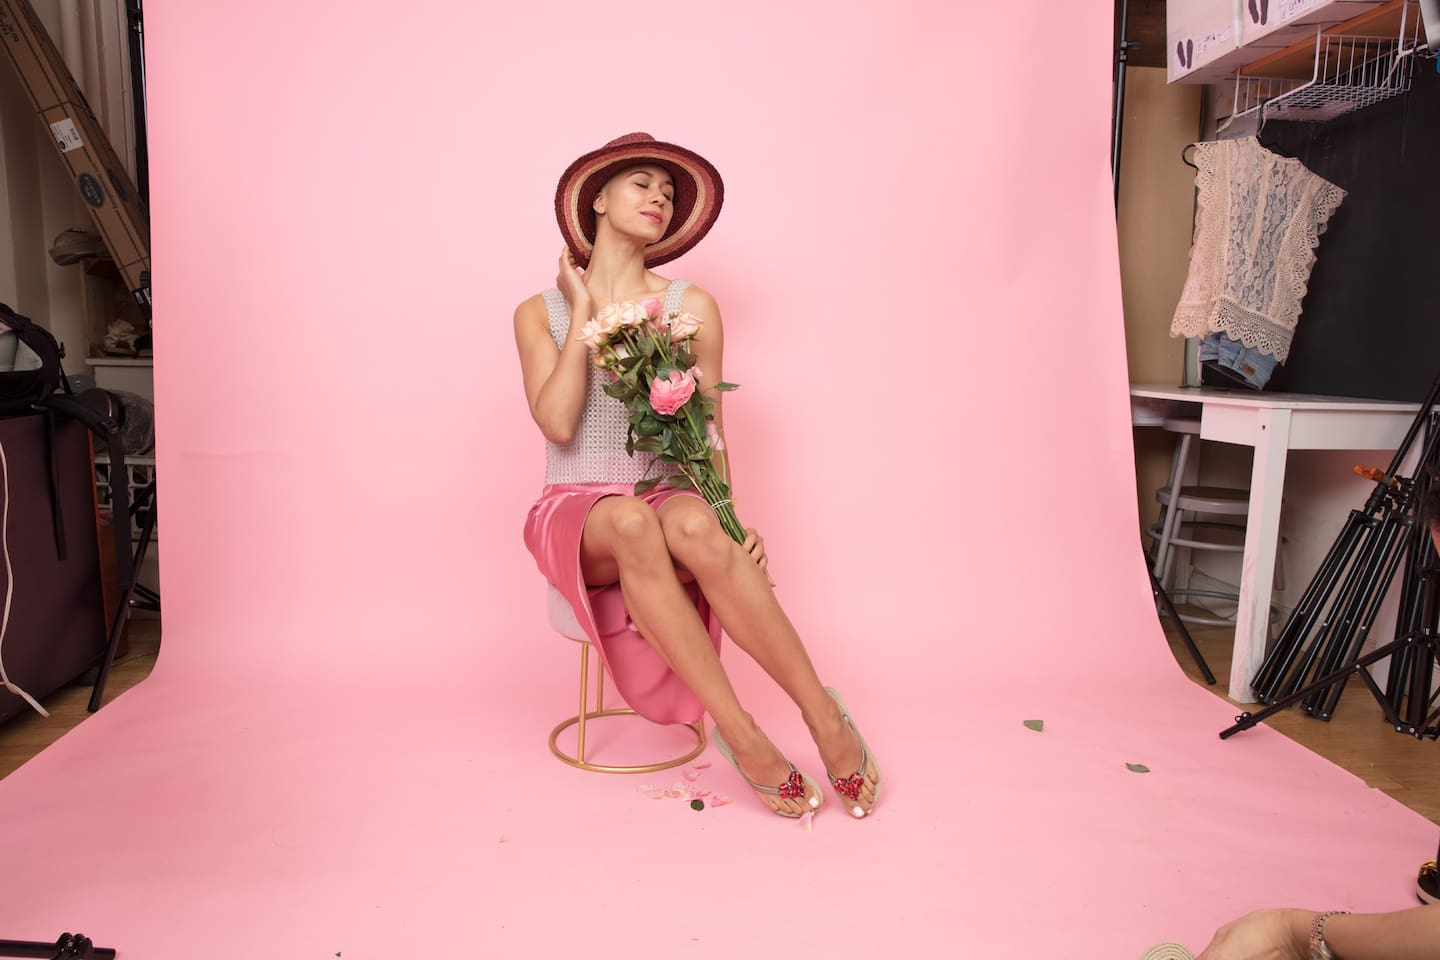 For fashion photoshoot, we have pink, yellow and small white backdrop and polls.